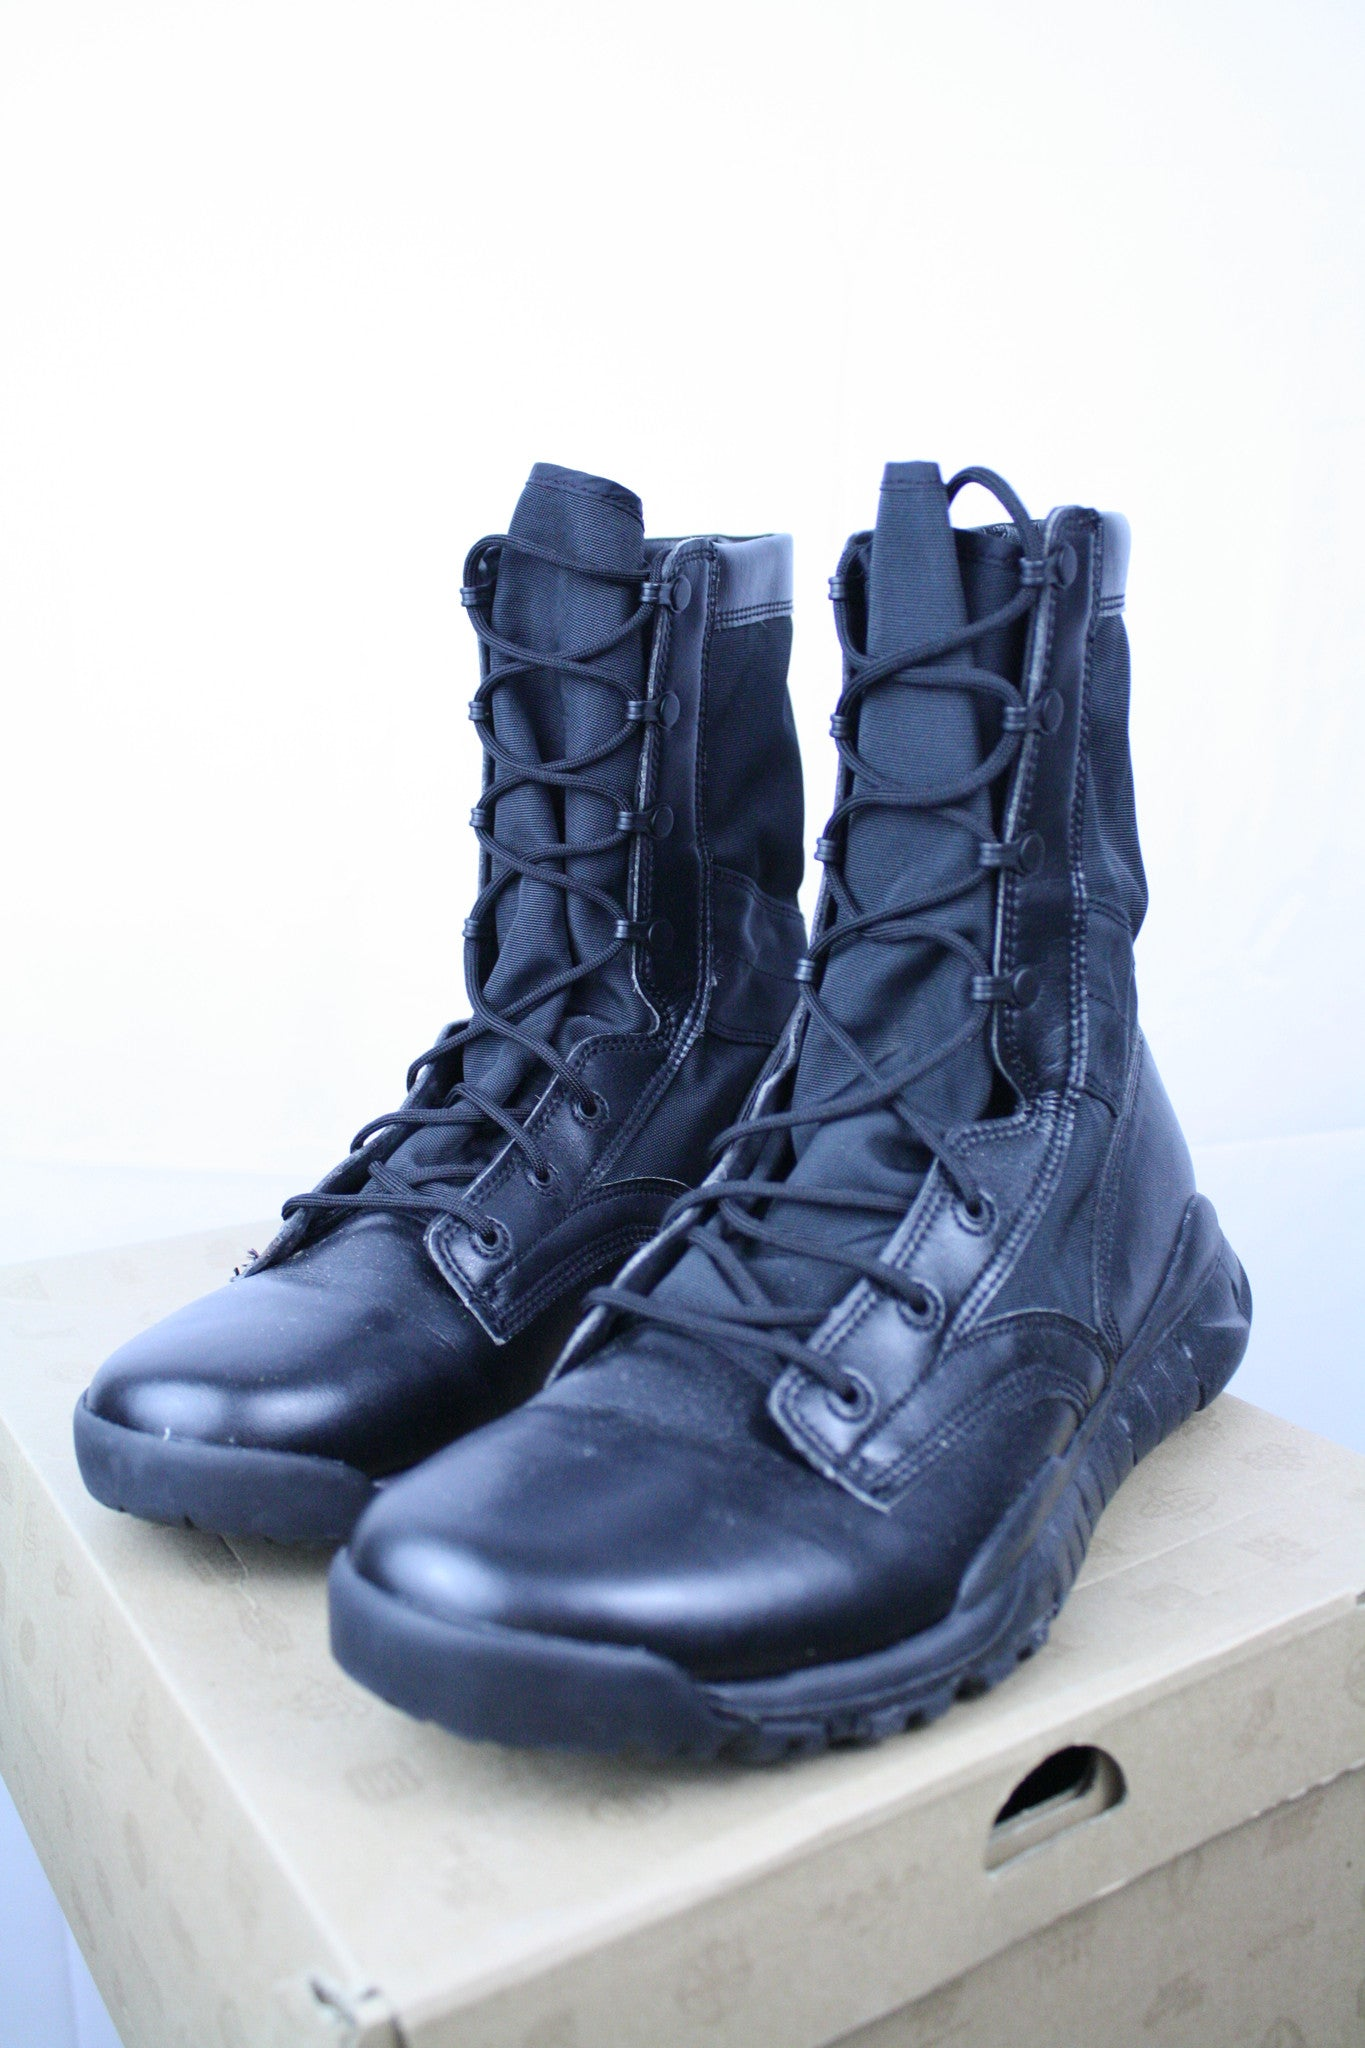 Nike Special Field Boot (Black Leather) - 11